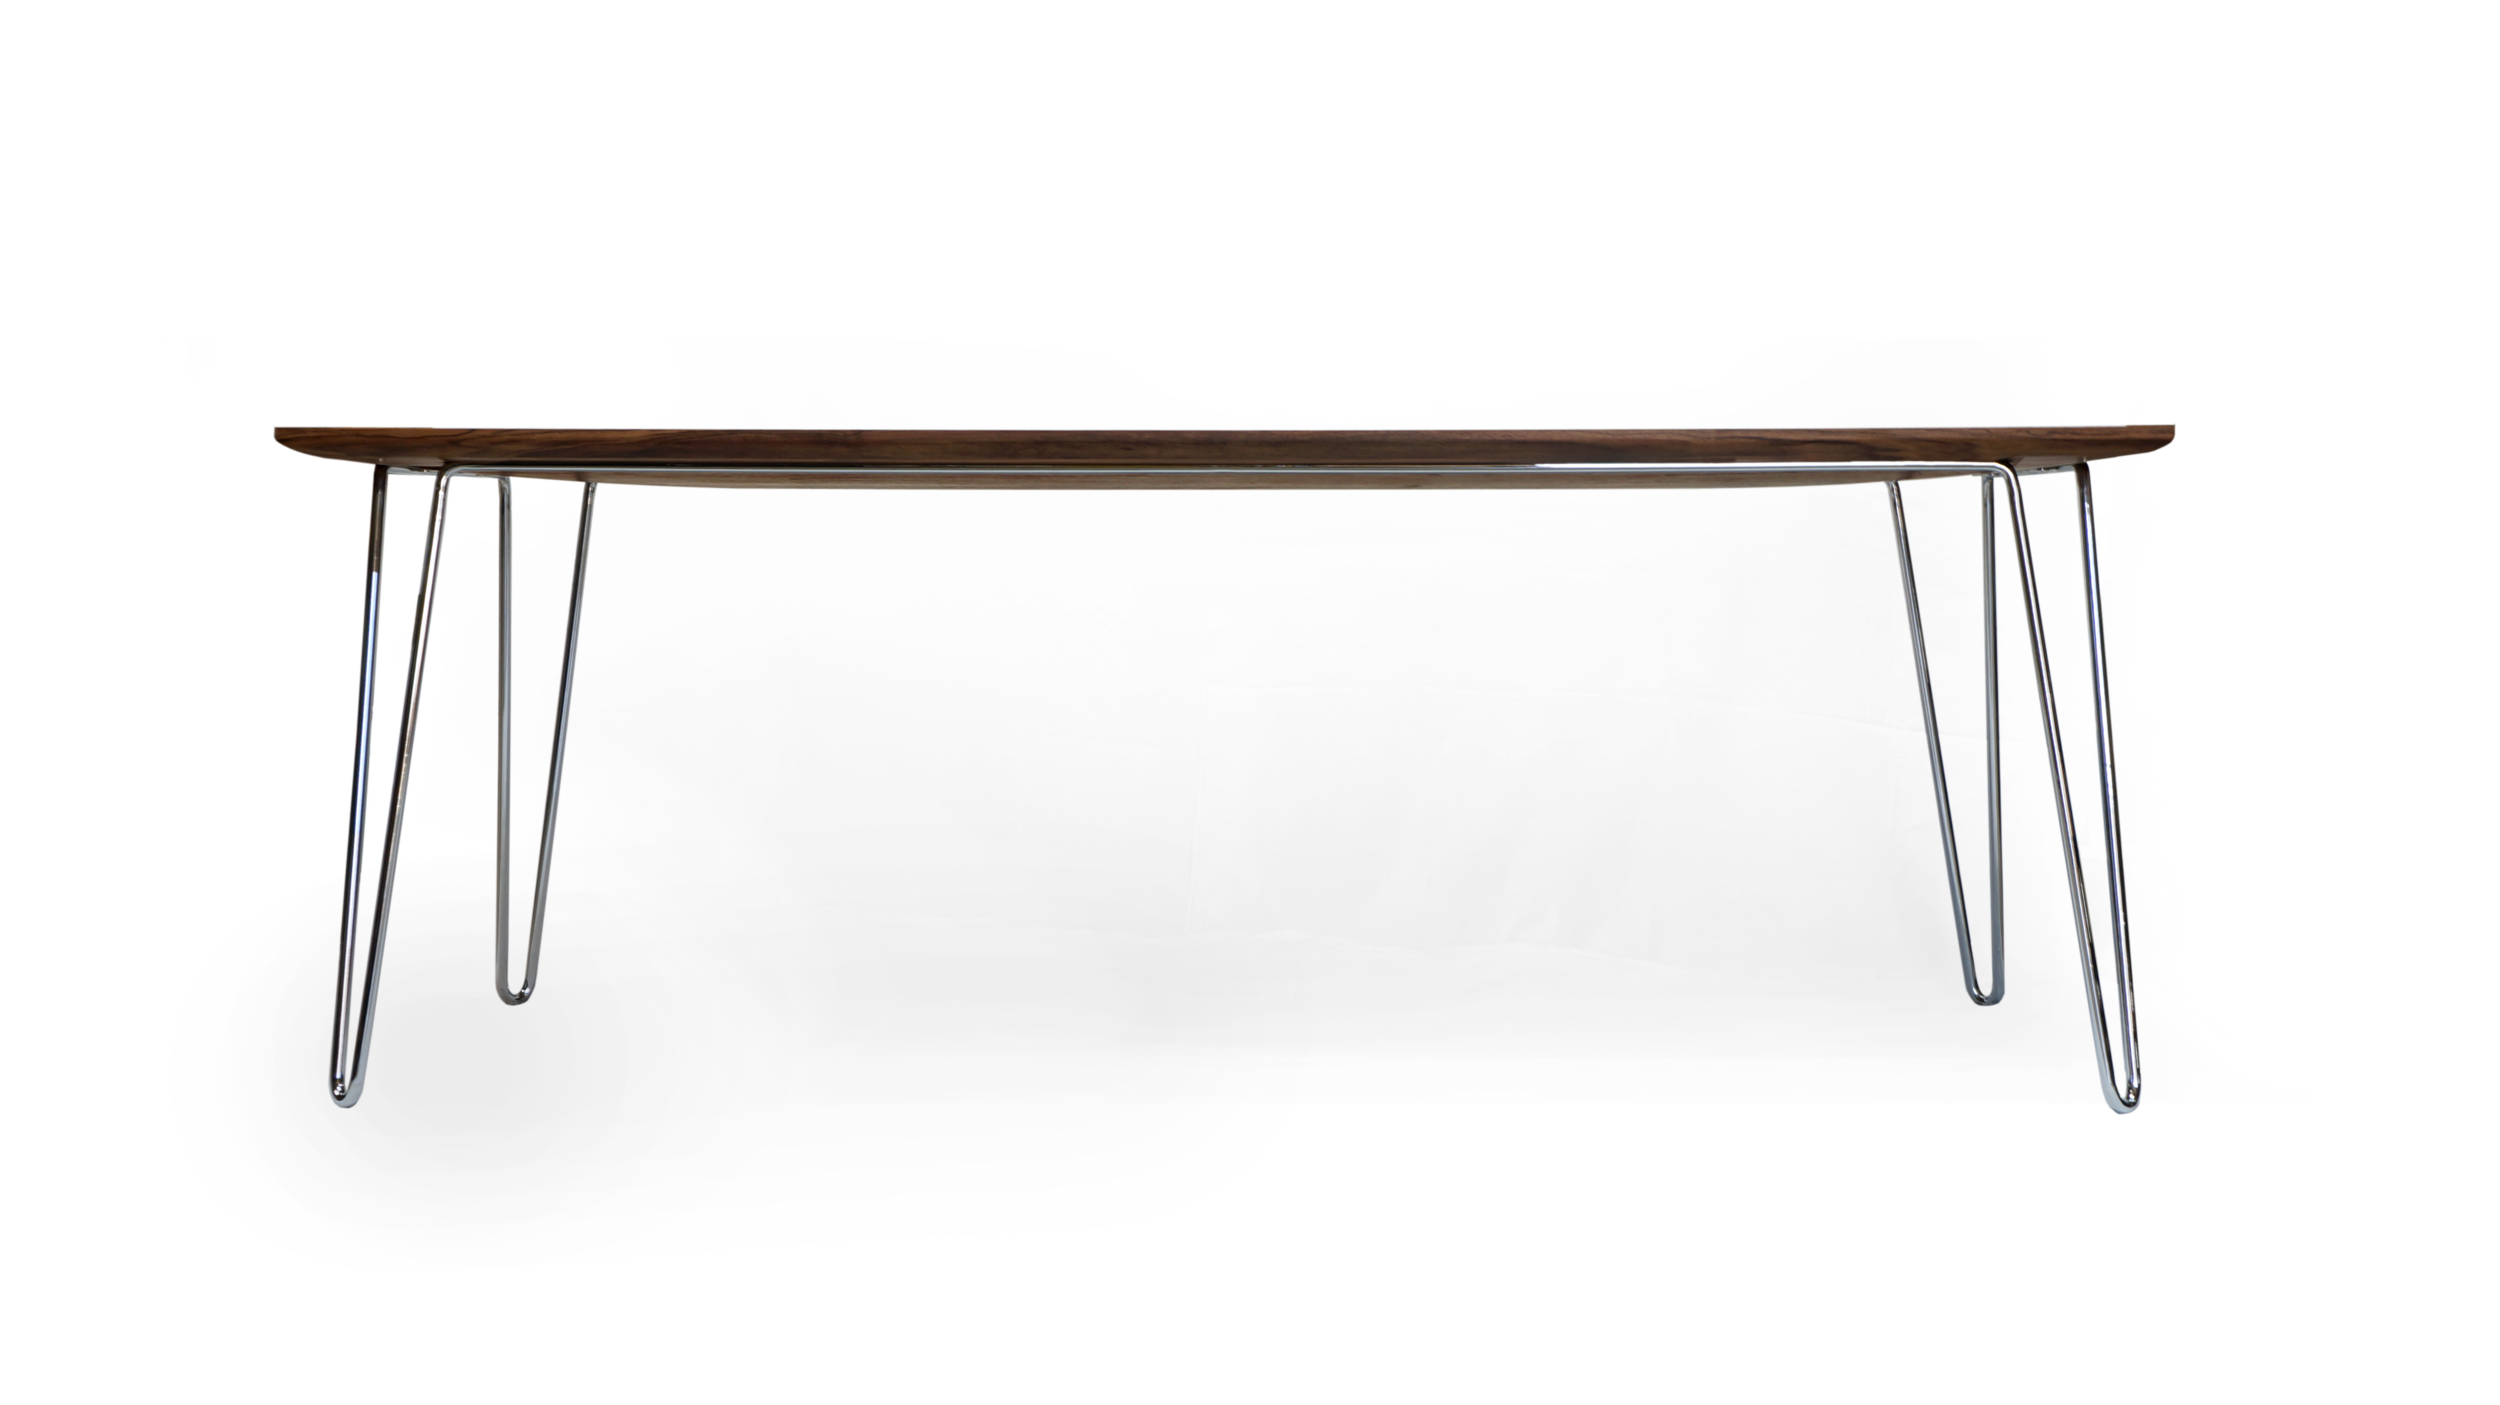 sarajevo-table-benhall-design-modern-furniture-hairpin-wood-cnc-side.png